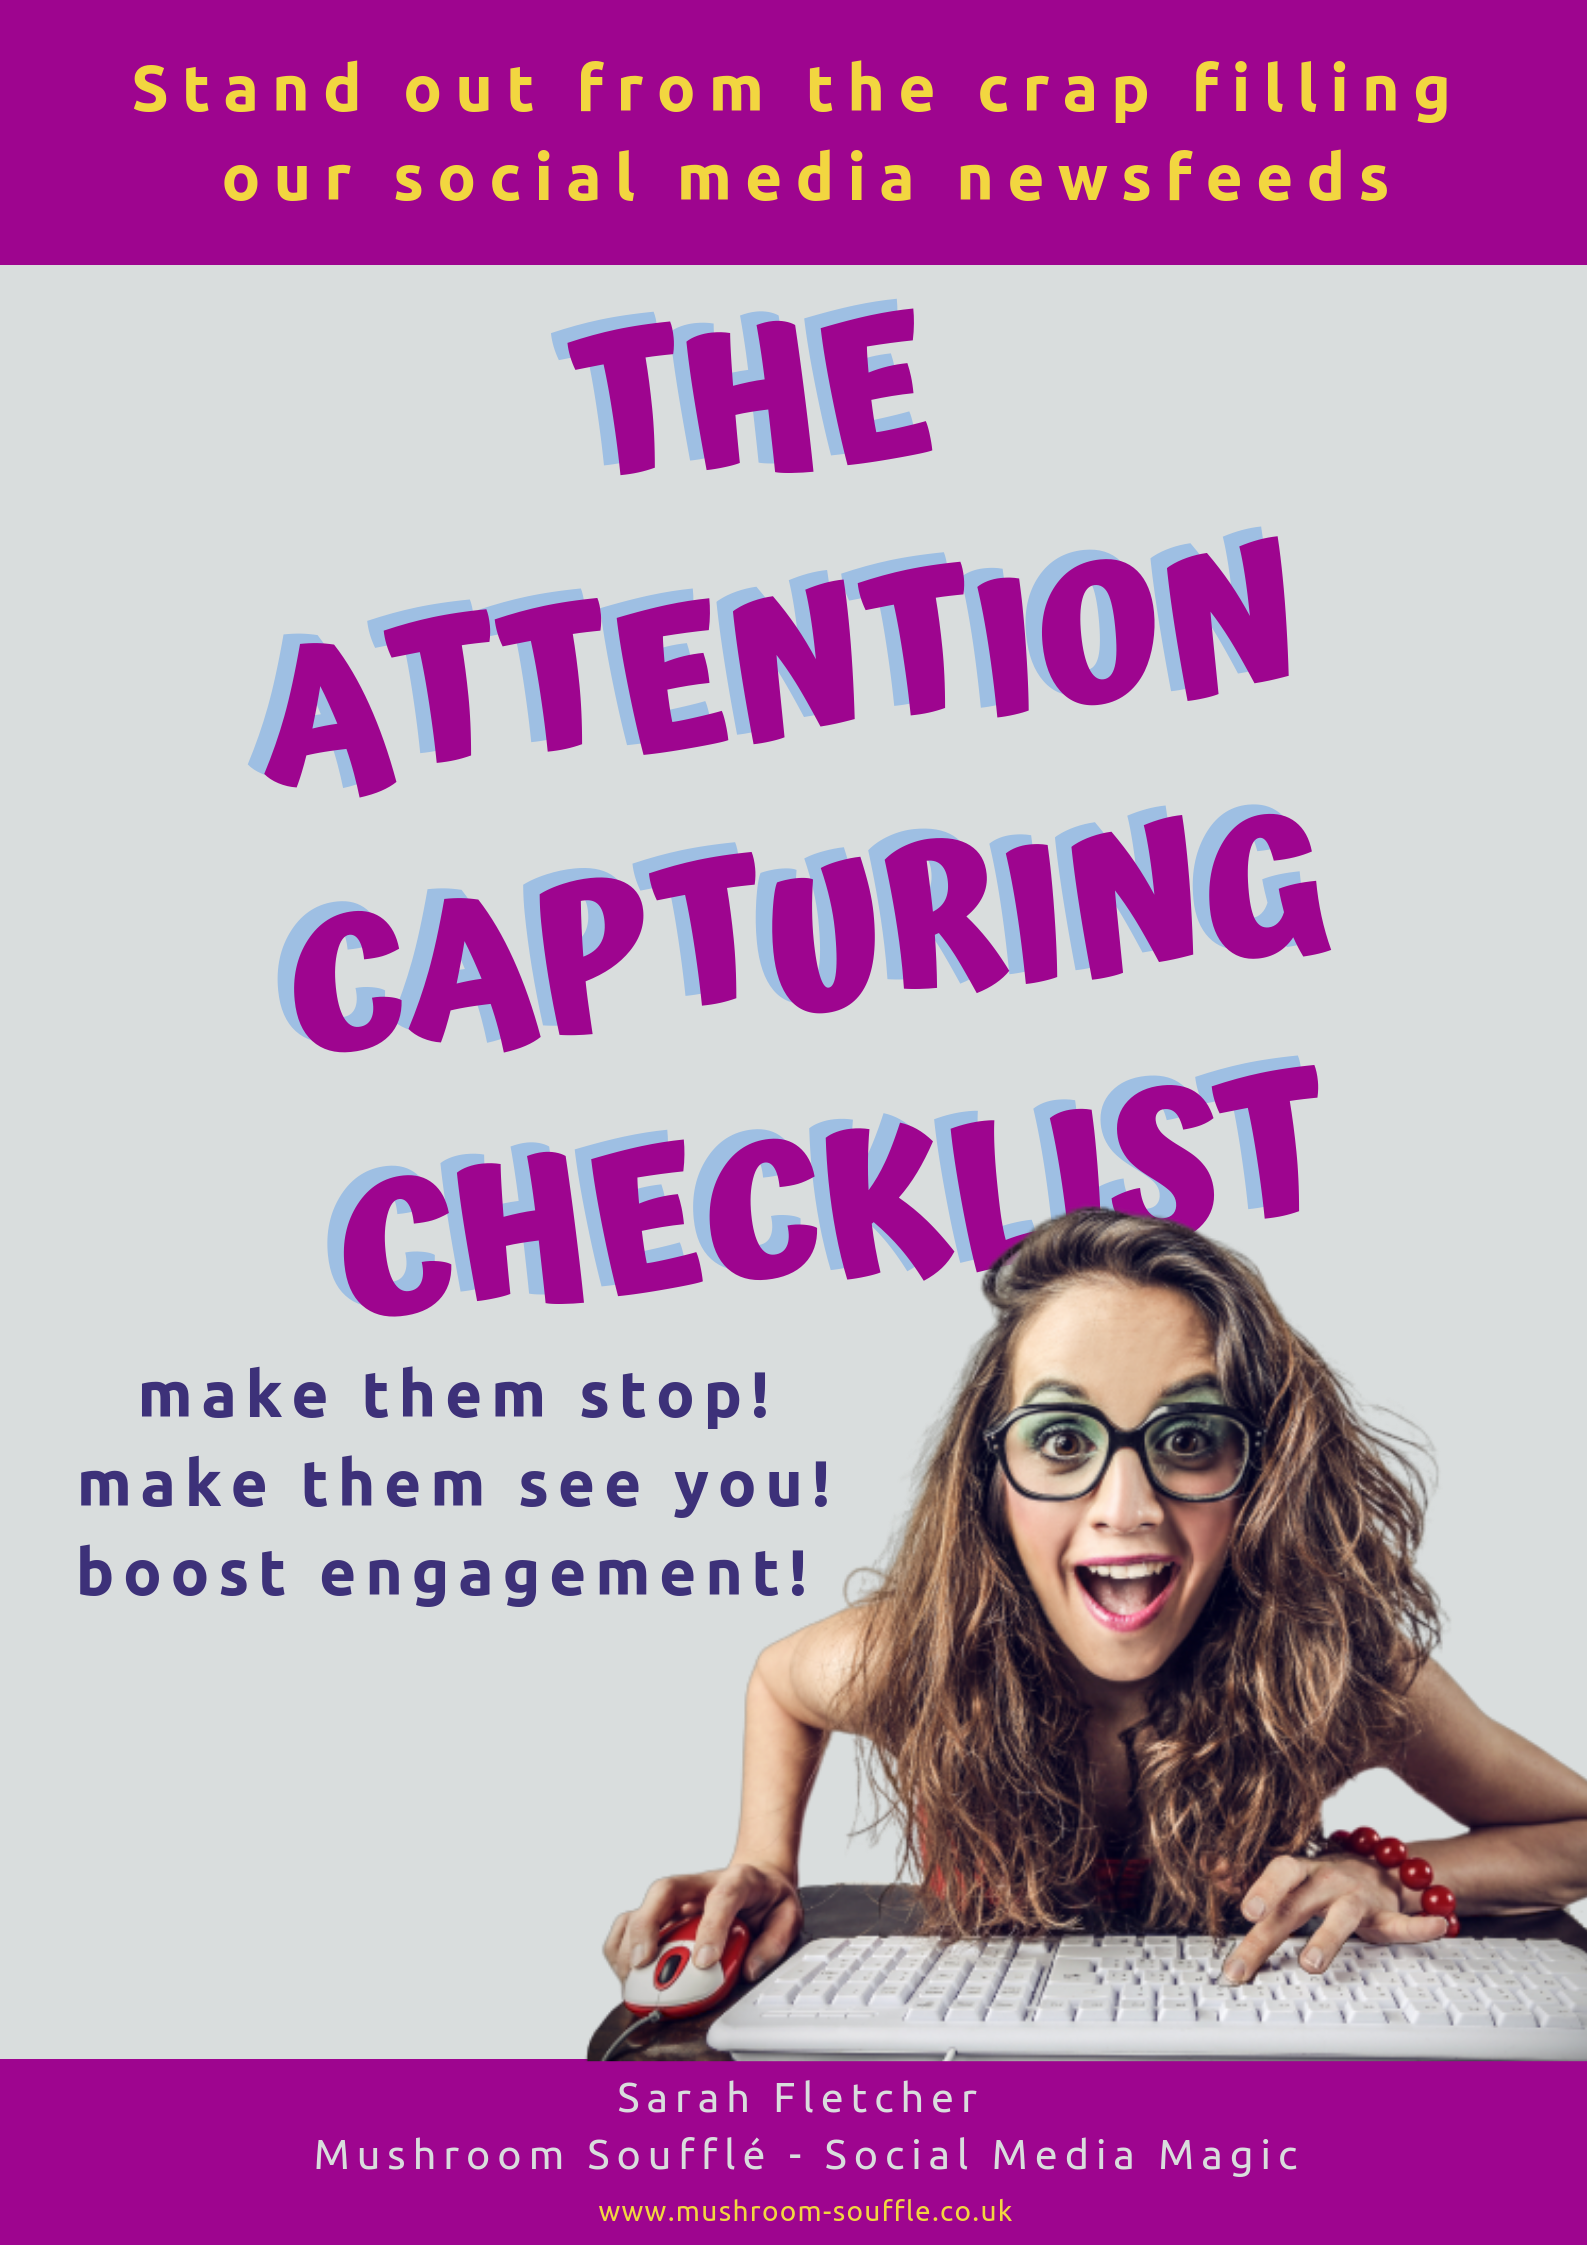 The Attention Capturing Checklist